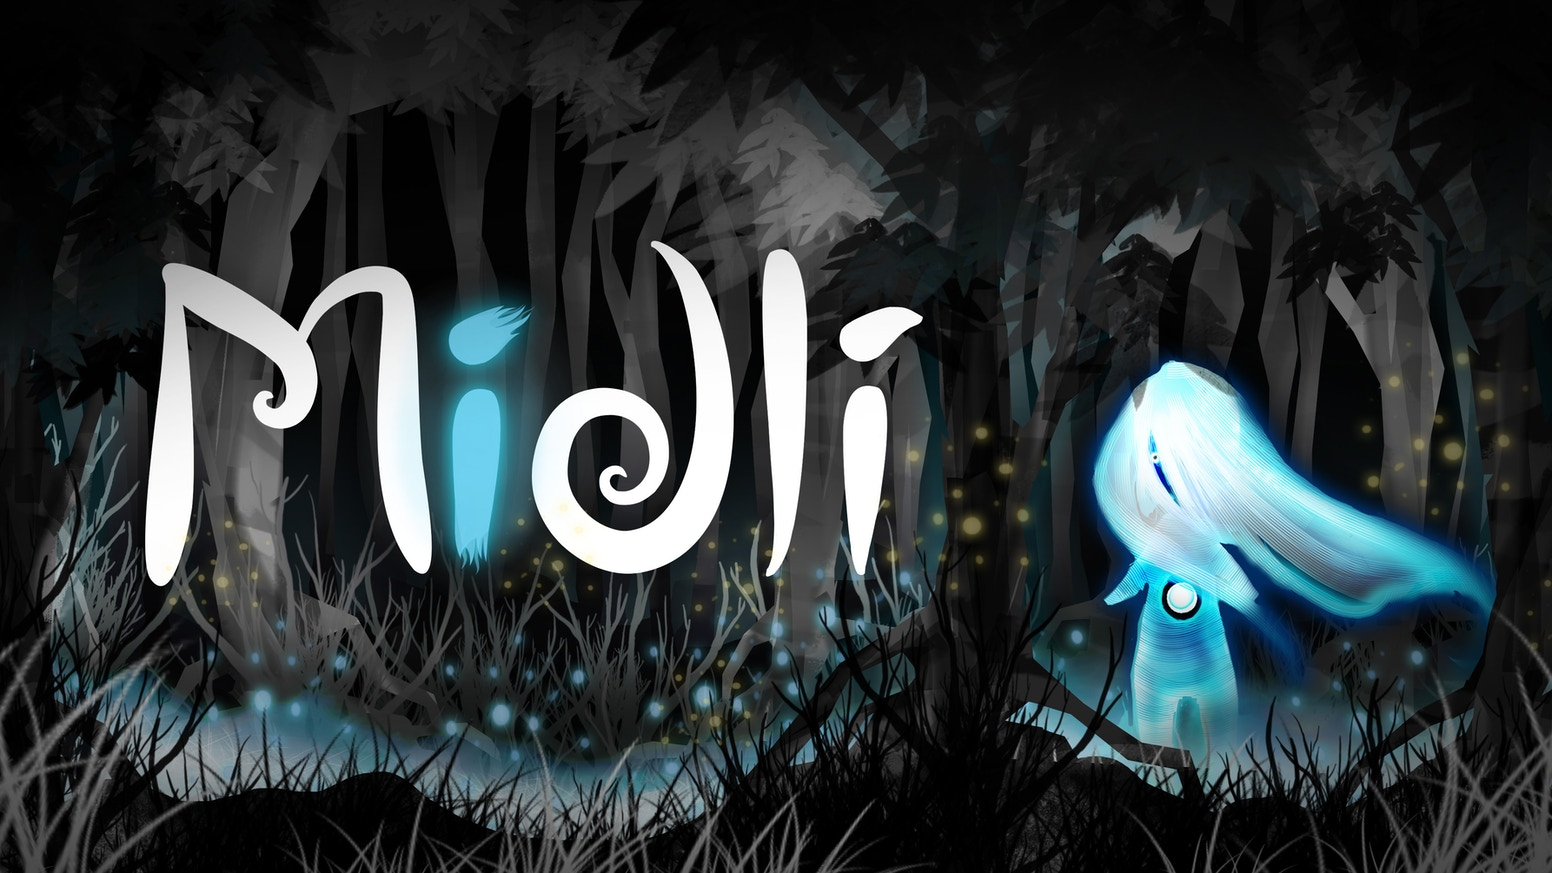 Join Heli as she guides the fates of four spirits stuck in Midli, in an otherworldly and atmospheric Breakout inspired mobile game